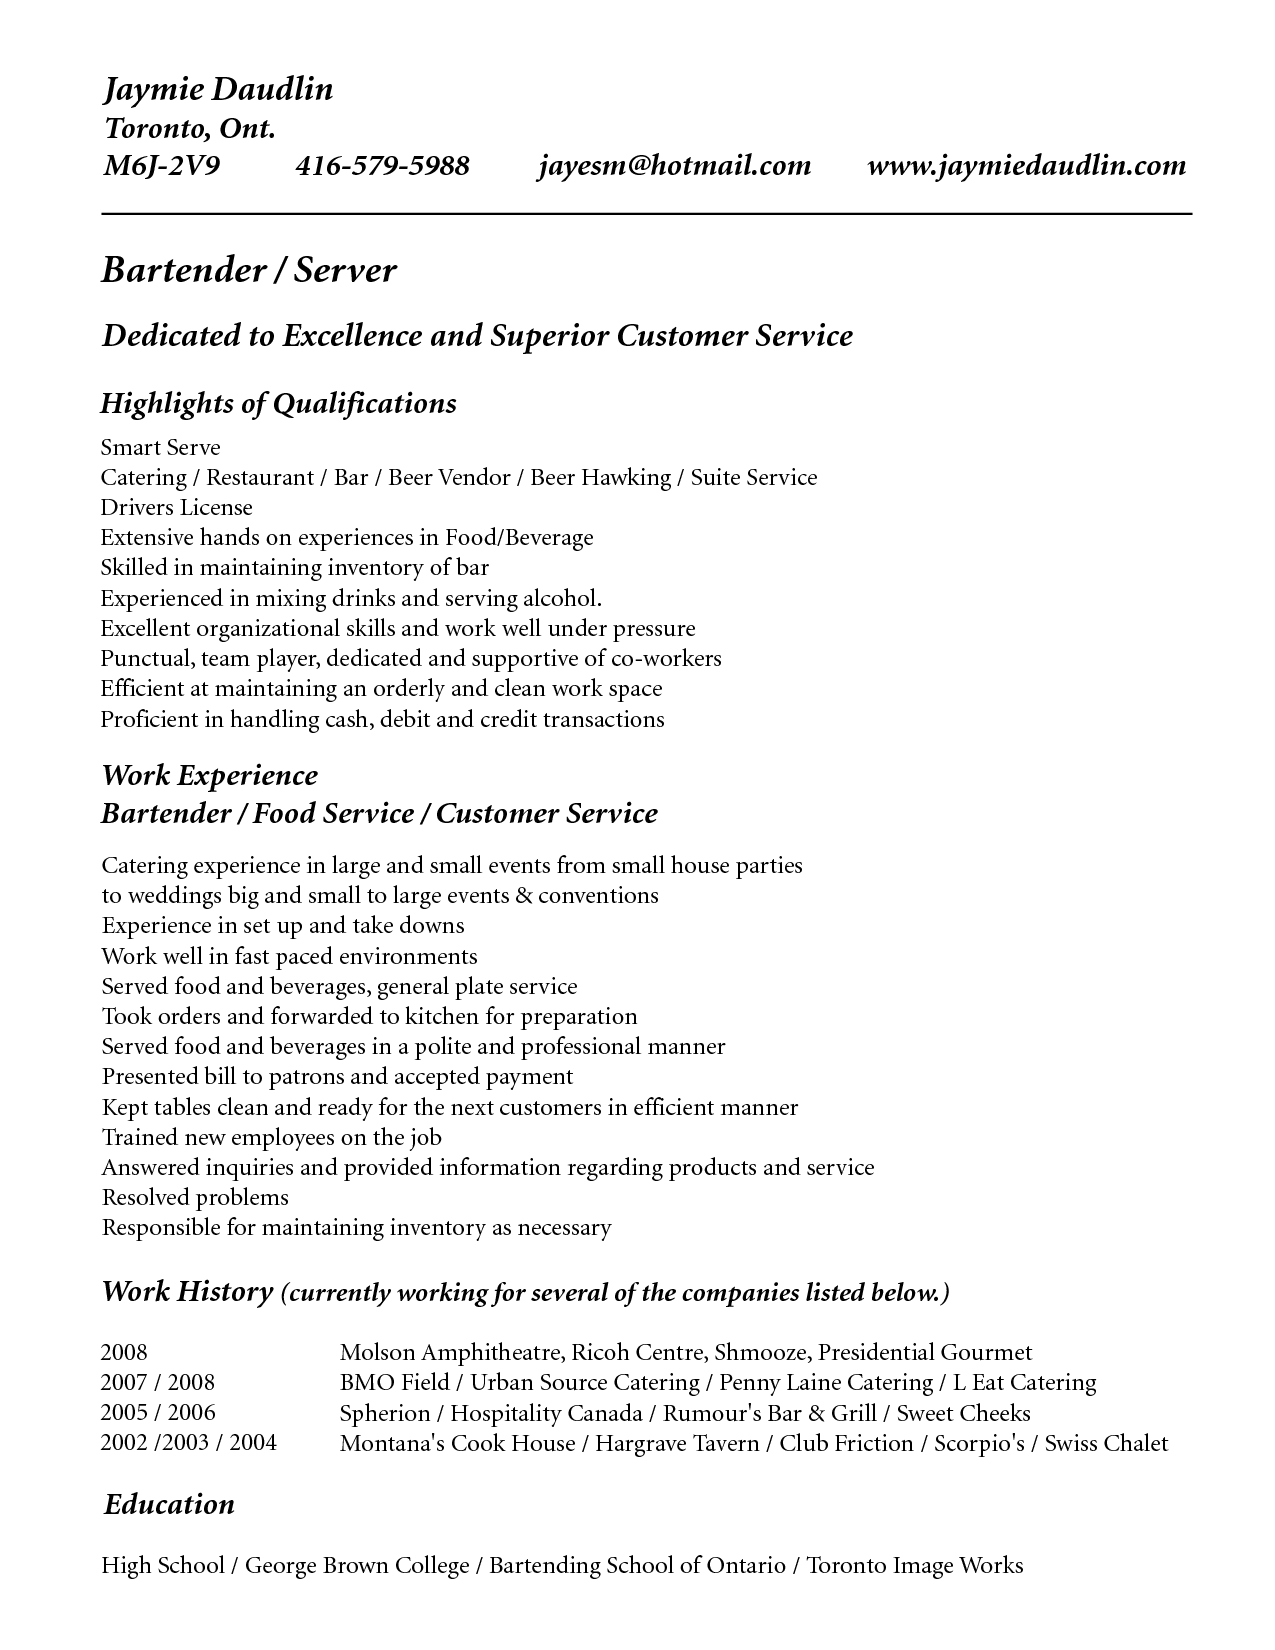 Sample Resume Pdf Resume Template For Bartender No Experience  Httpwww